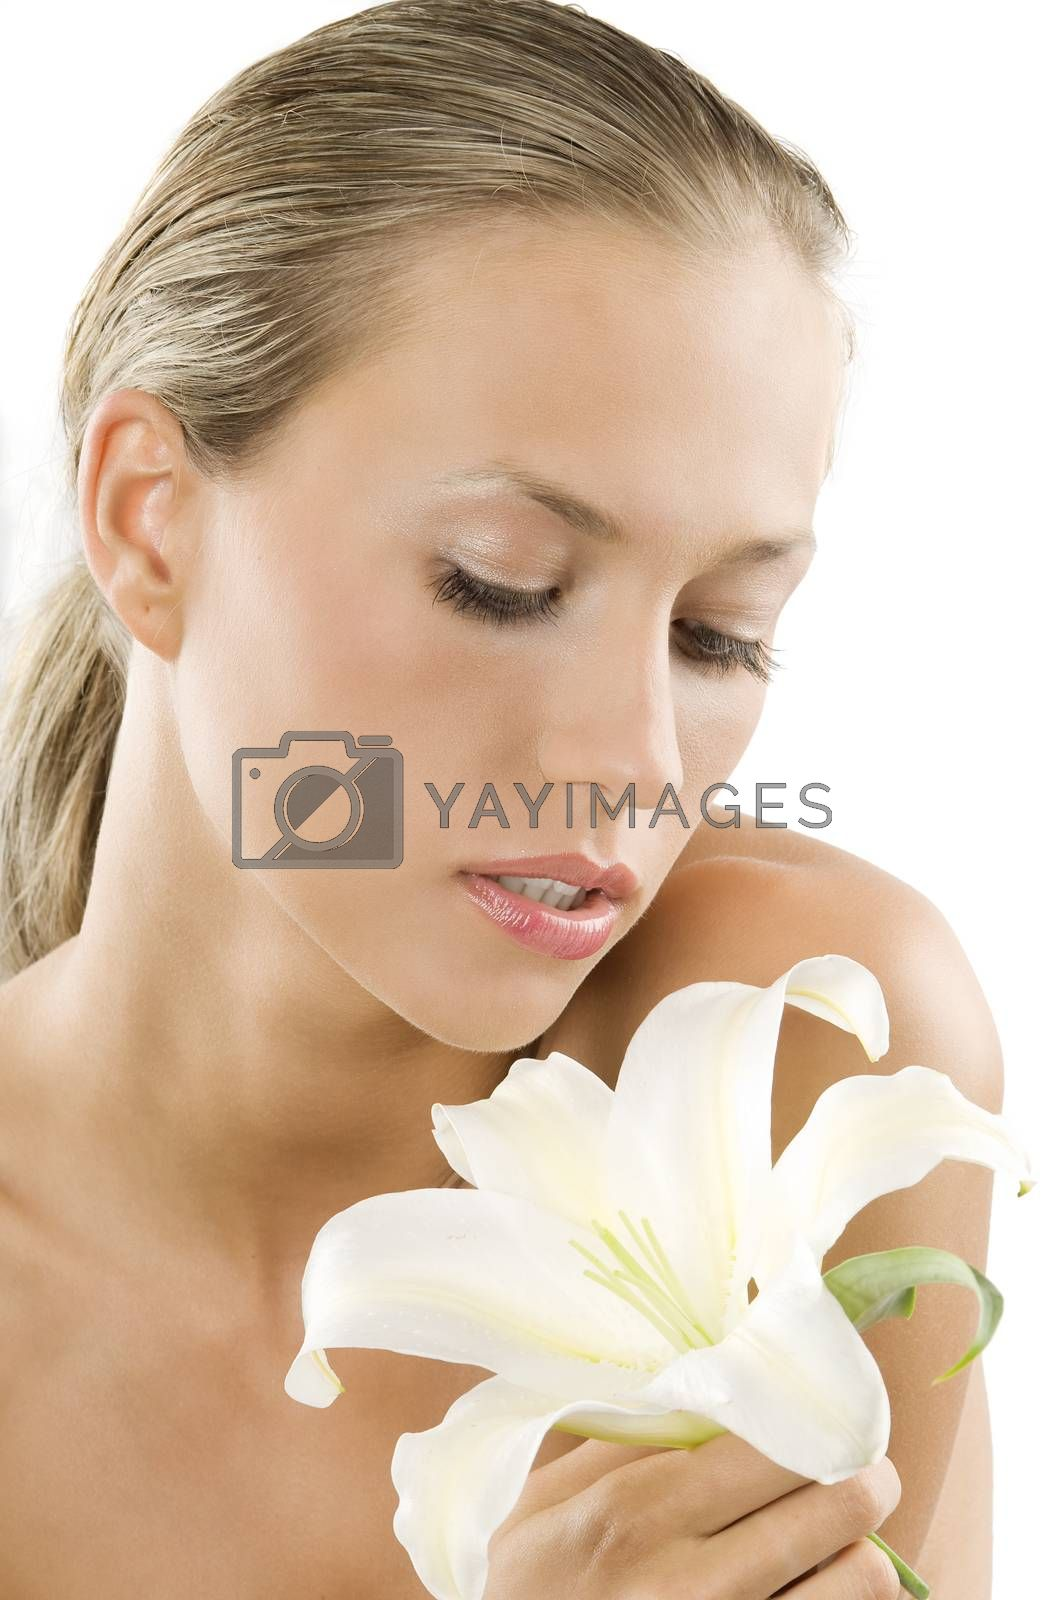 Royalty free image of looking flower by fotoCD